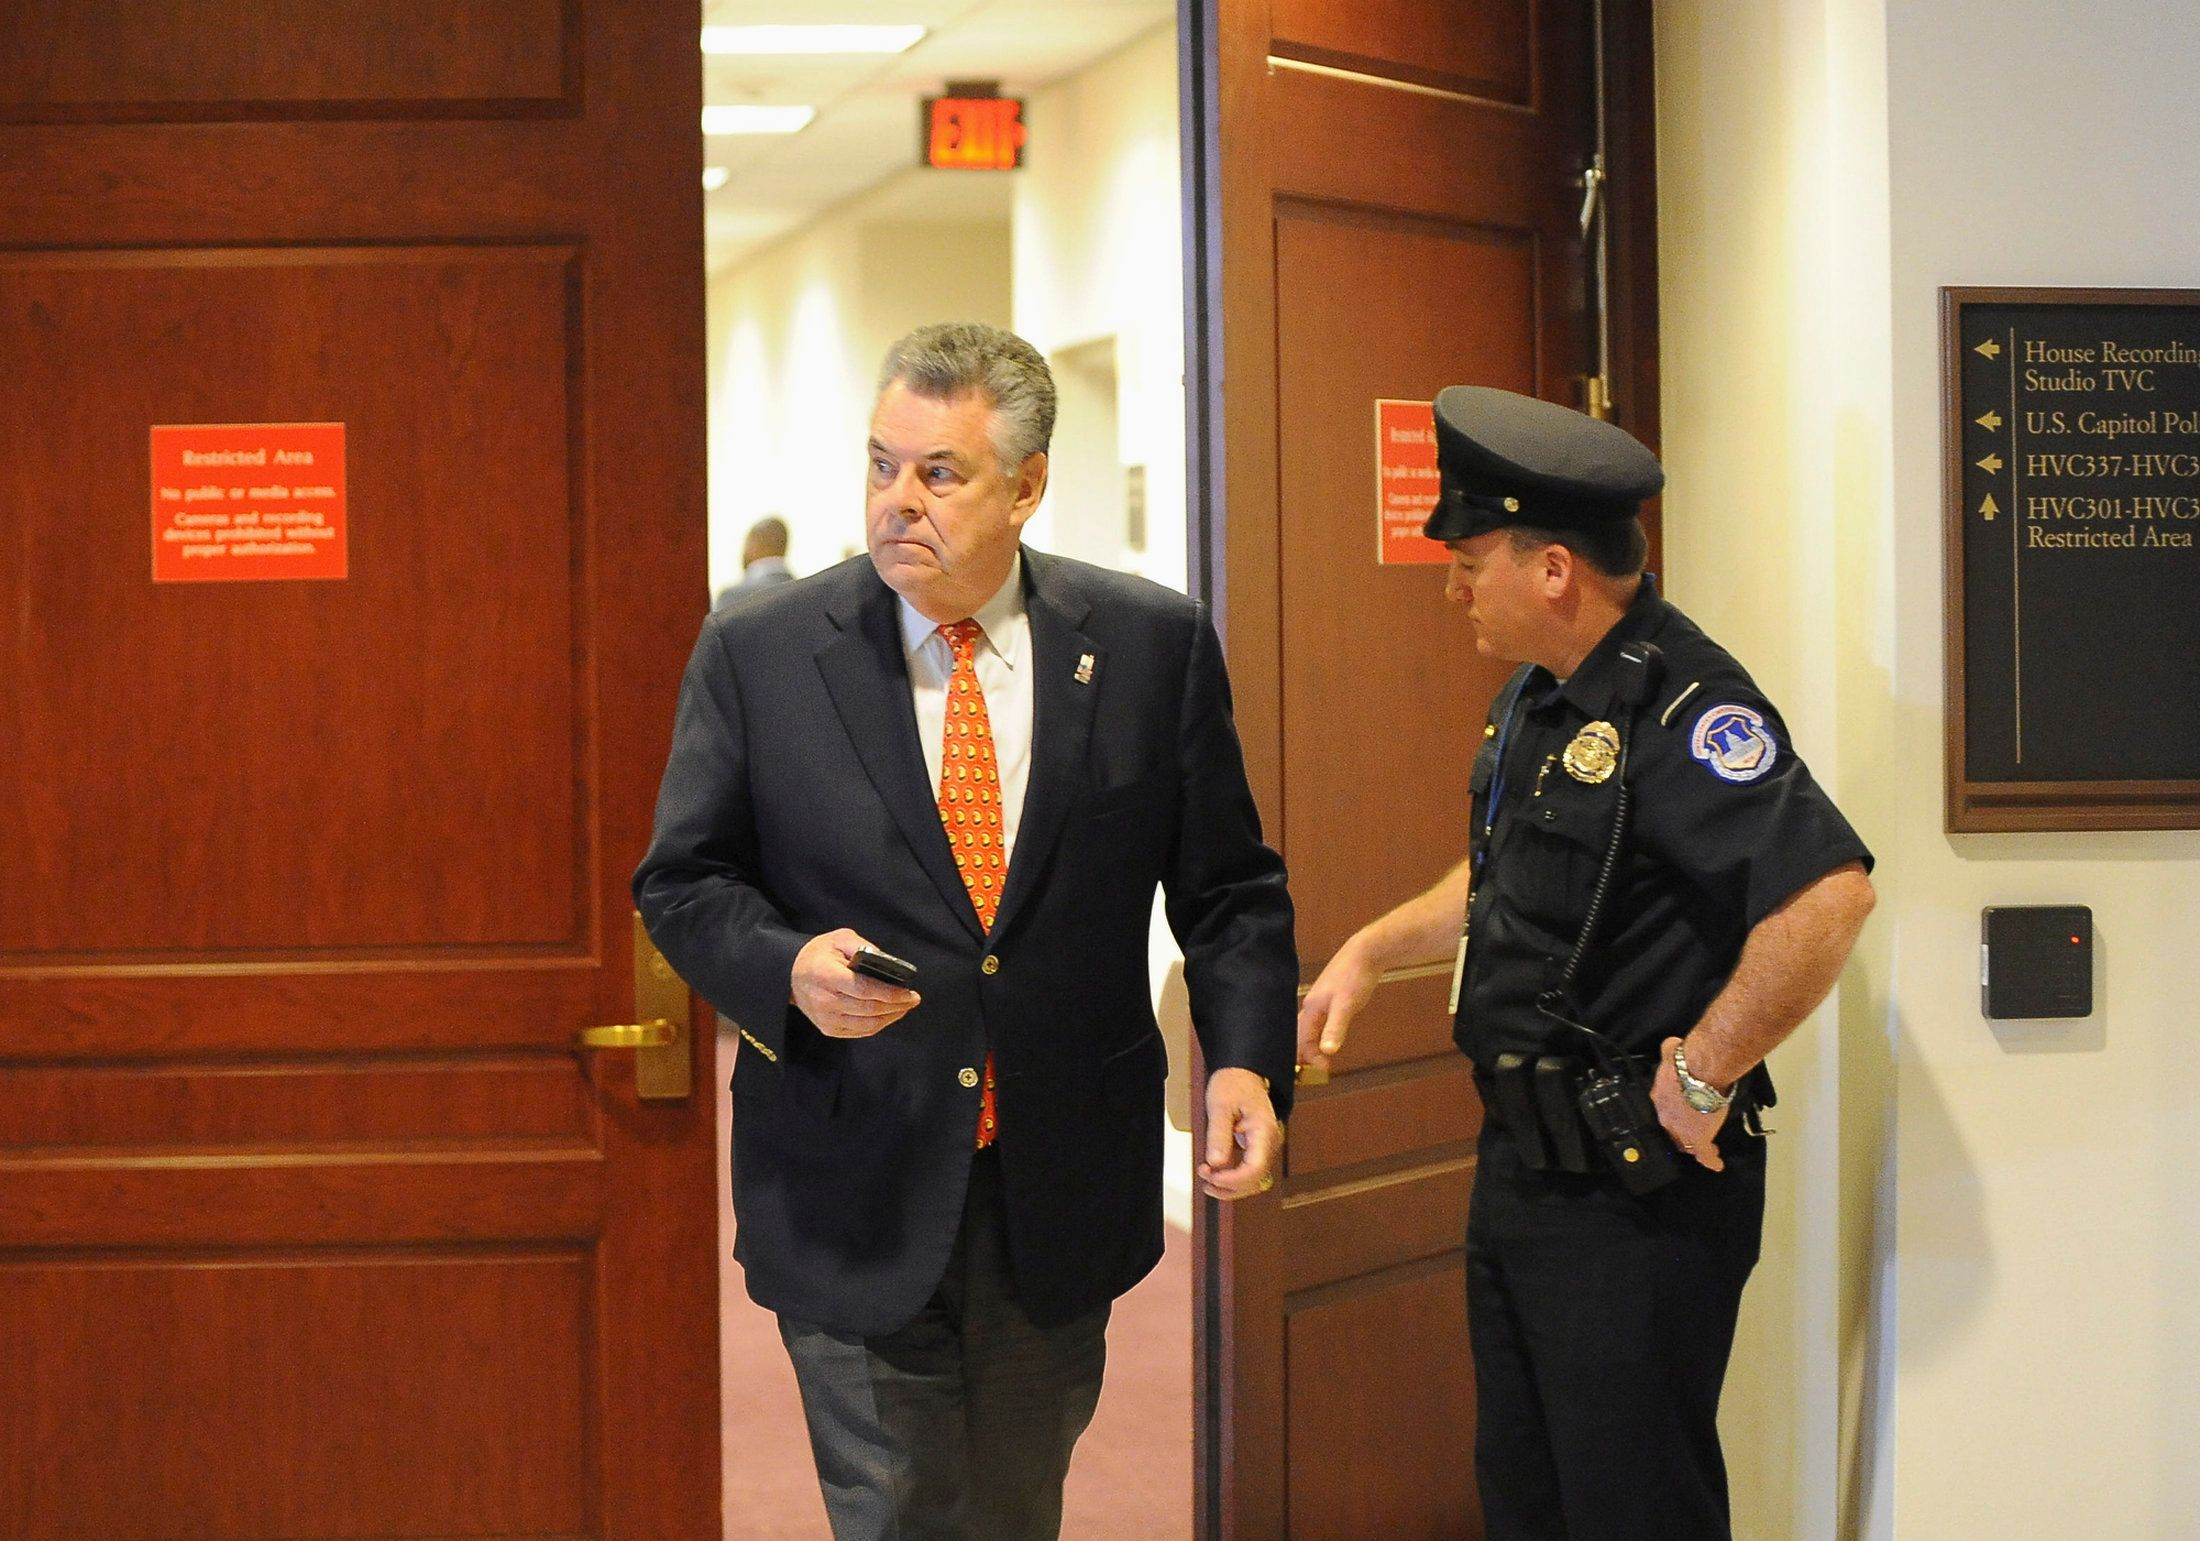 Rep. Peter King (R) leaves the hearing after U.S. General David Petraeus testified at the U.S. House Intelligence Committee meeting on the attack of the American Consulate in Benghazi on Capitol Hill in Washington November 16, 2012. Former CIA Director Petraeus testified Friday on Capitol Hill about the attack on the U.S. diplomatic mission in Benghazi, Libya, but also is expected to be asked about his resignation last week over an extramarital affair.       REUTERS/Mary F. Calvert (UNITED STATES - Tags: POLITICS)